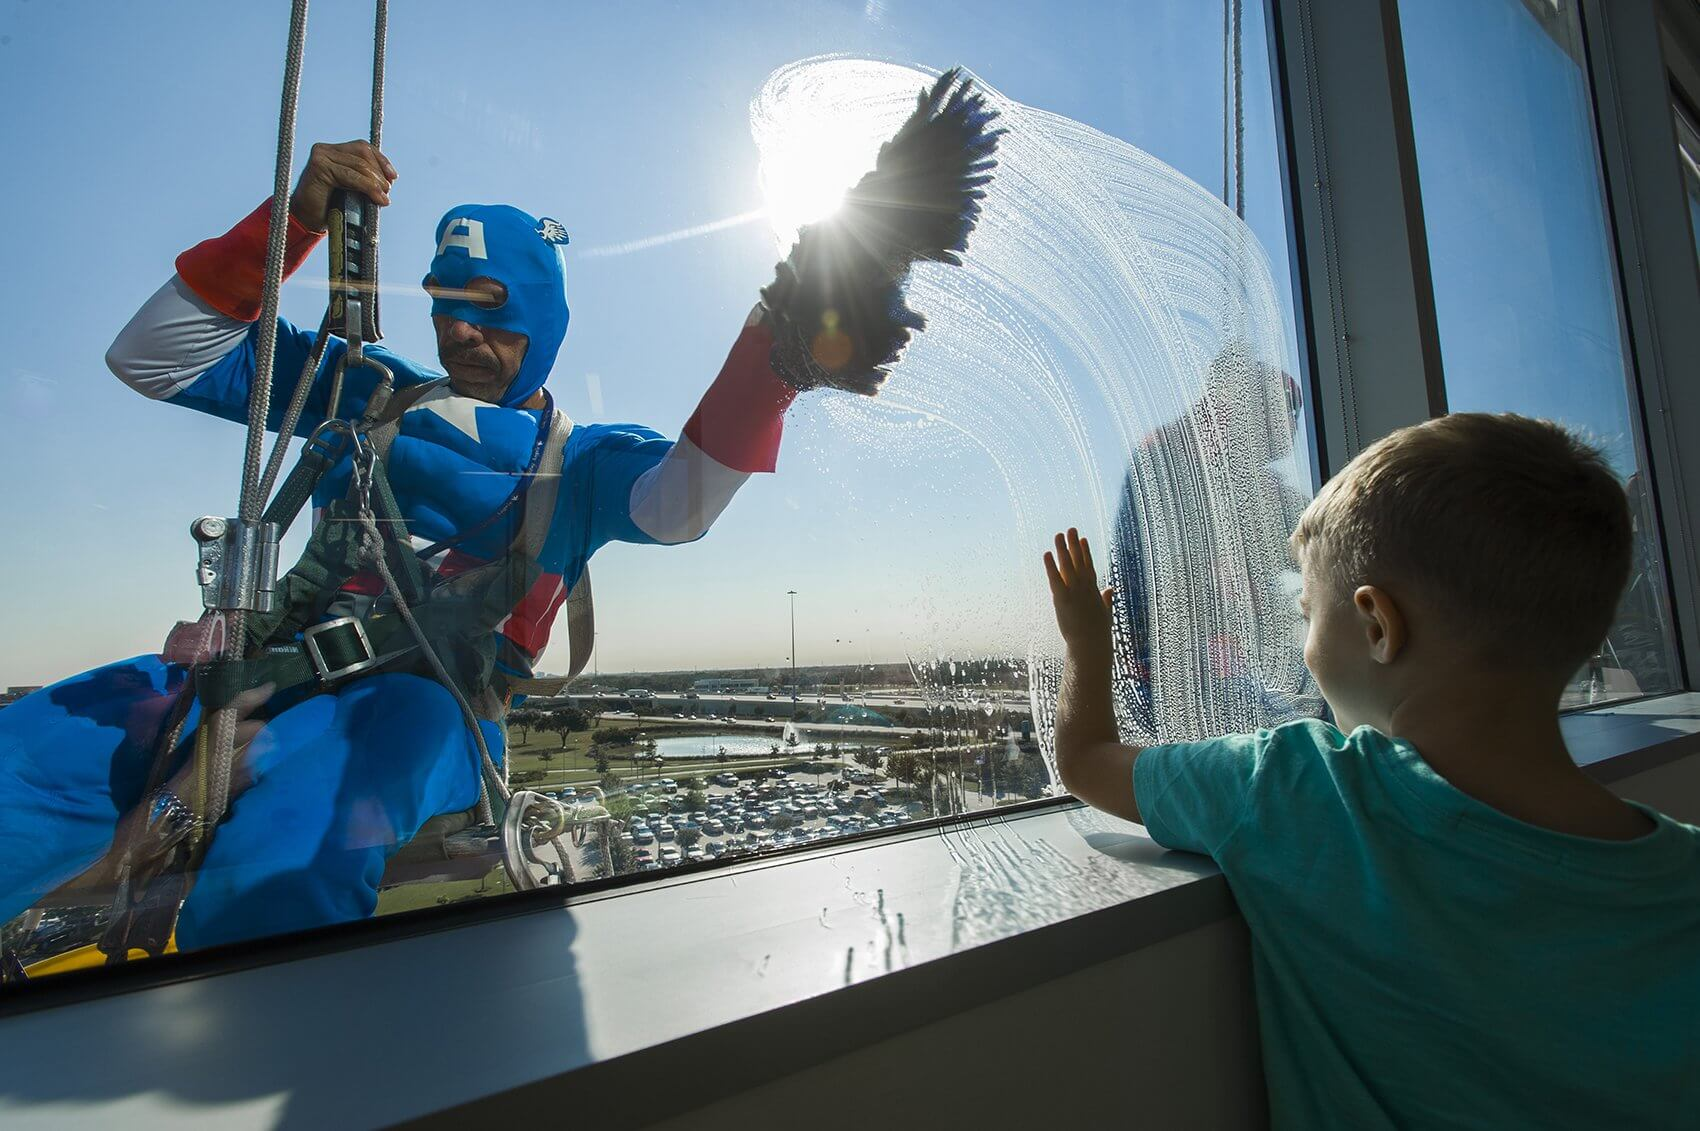 (Credit: Allen Kramer/Texas Children's Hospital)